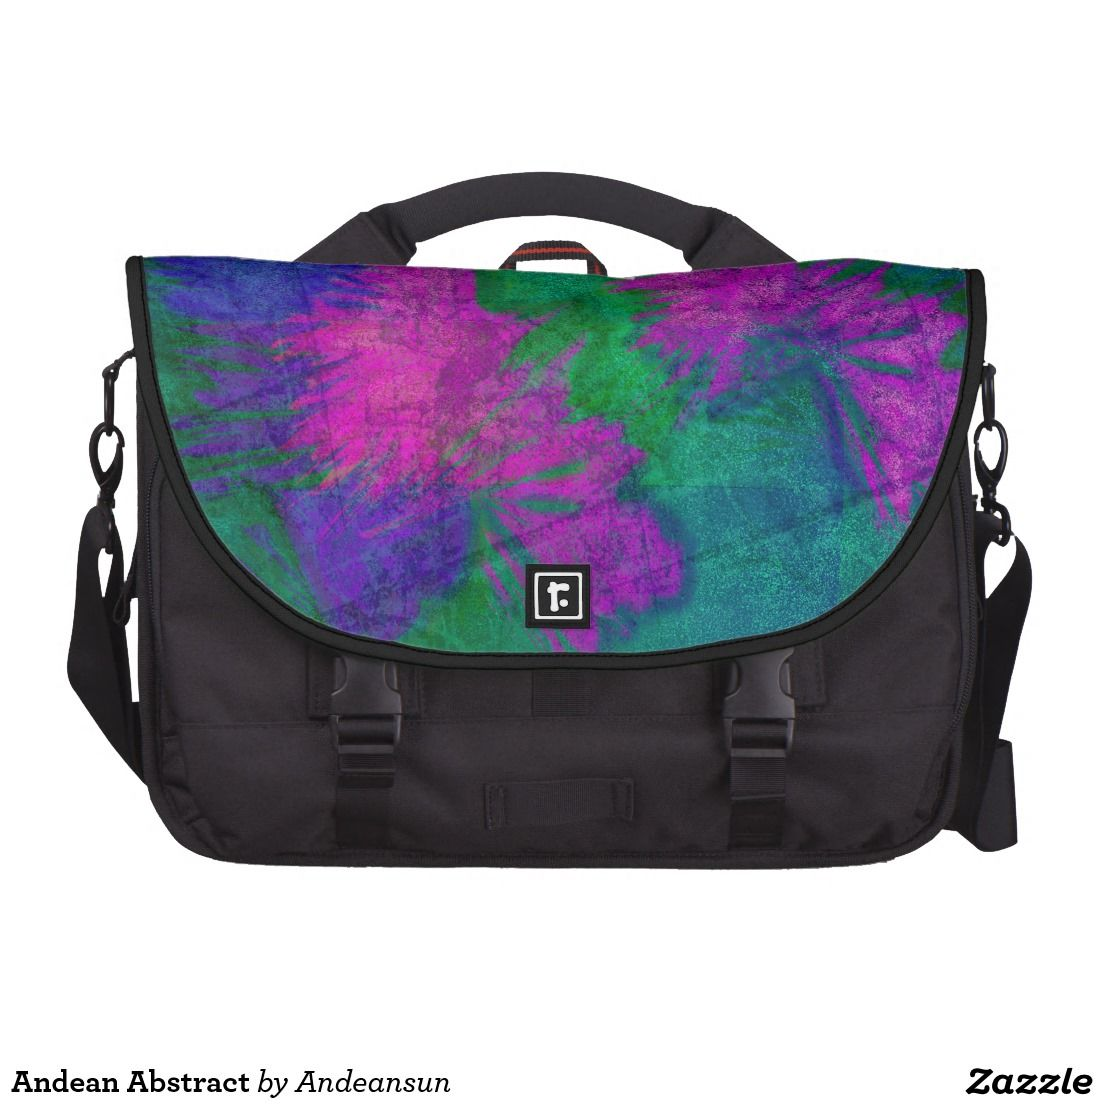 Andean Abstract Laptop Messenger Bag